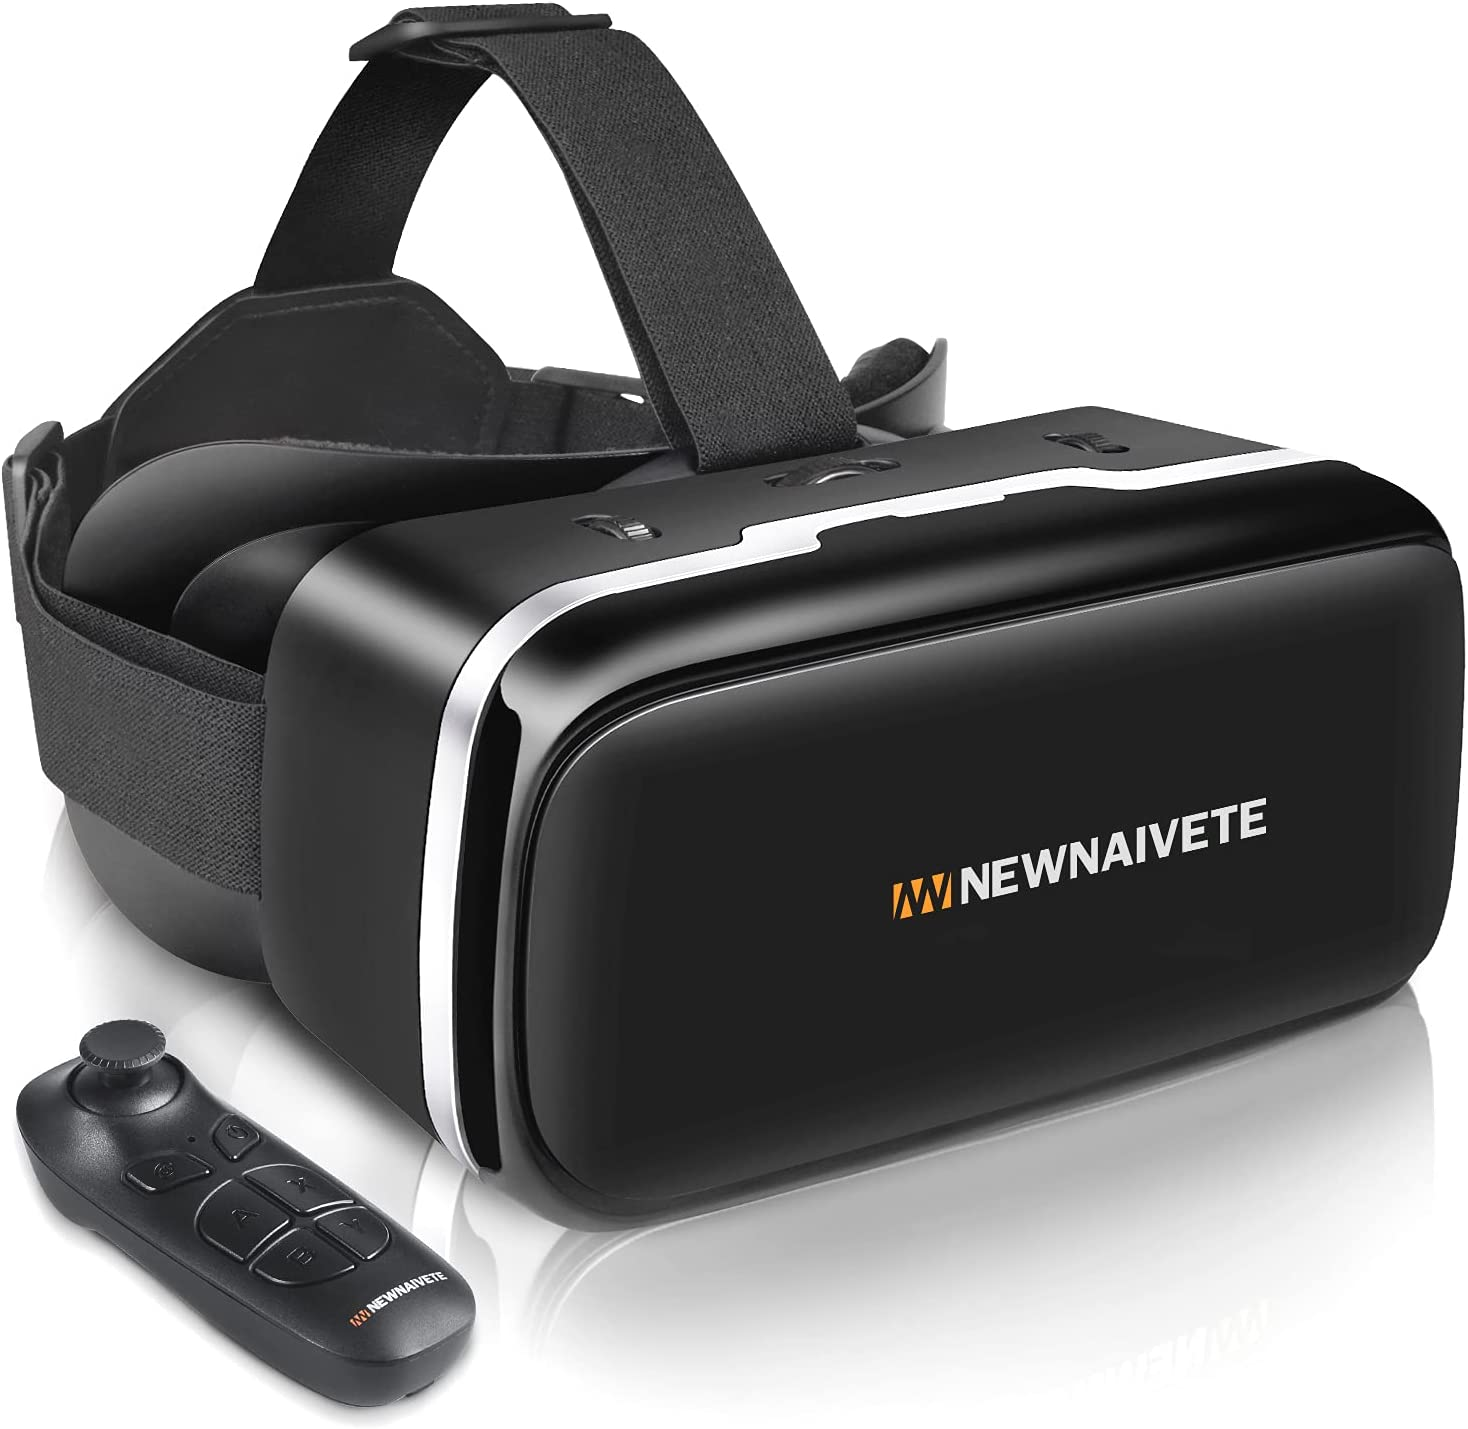 VR Headset with Remote Controller 3D Max 42% OFF Glasses Portland Mall Virtual Goggles Re